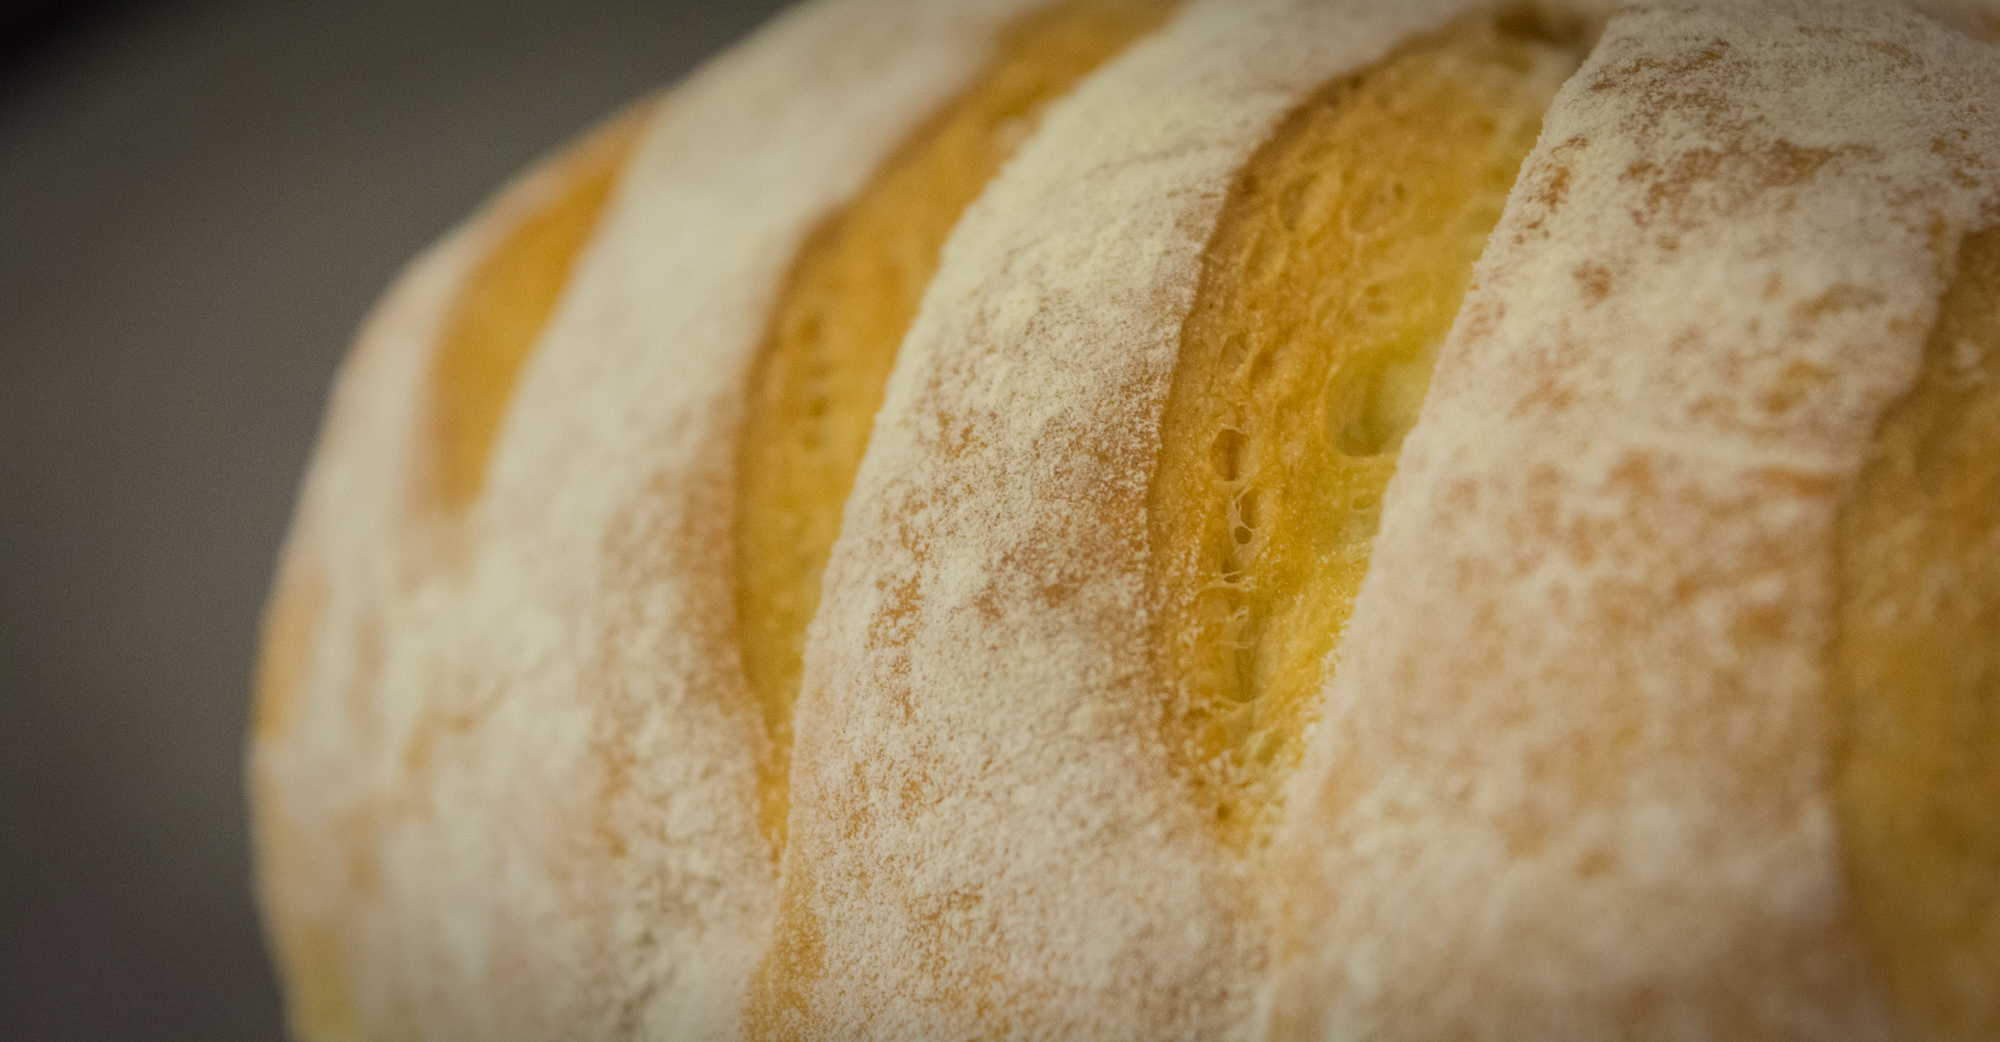 Emerson and Wests Bakery - White Bloomer